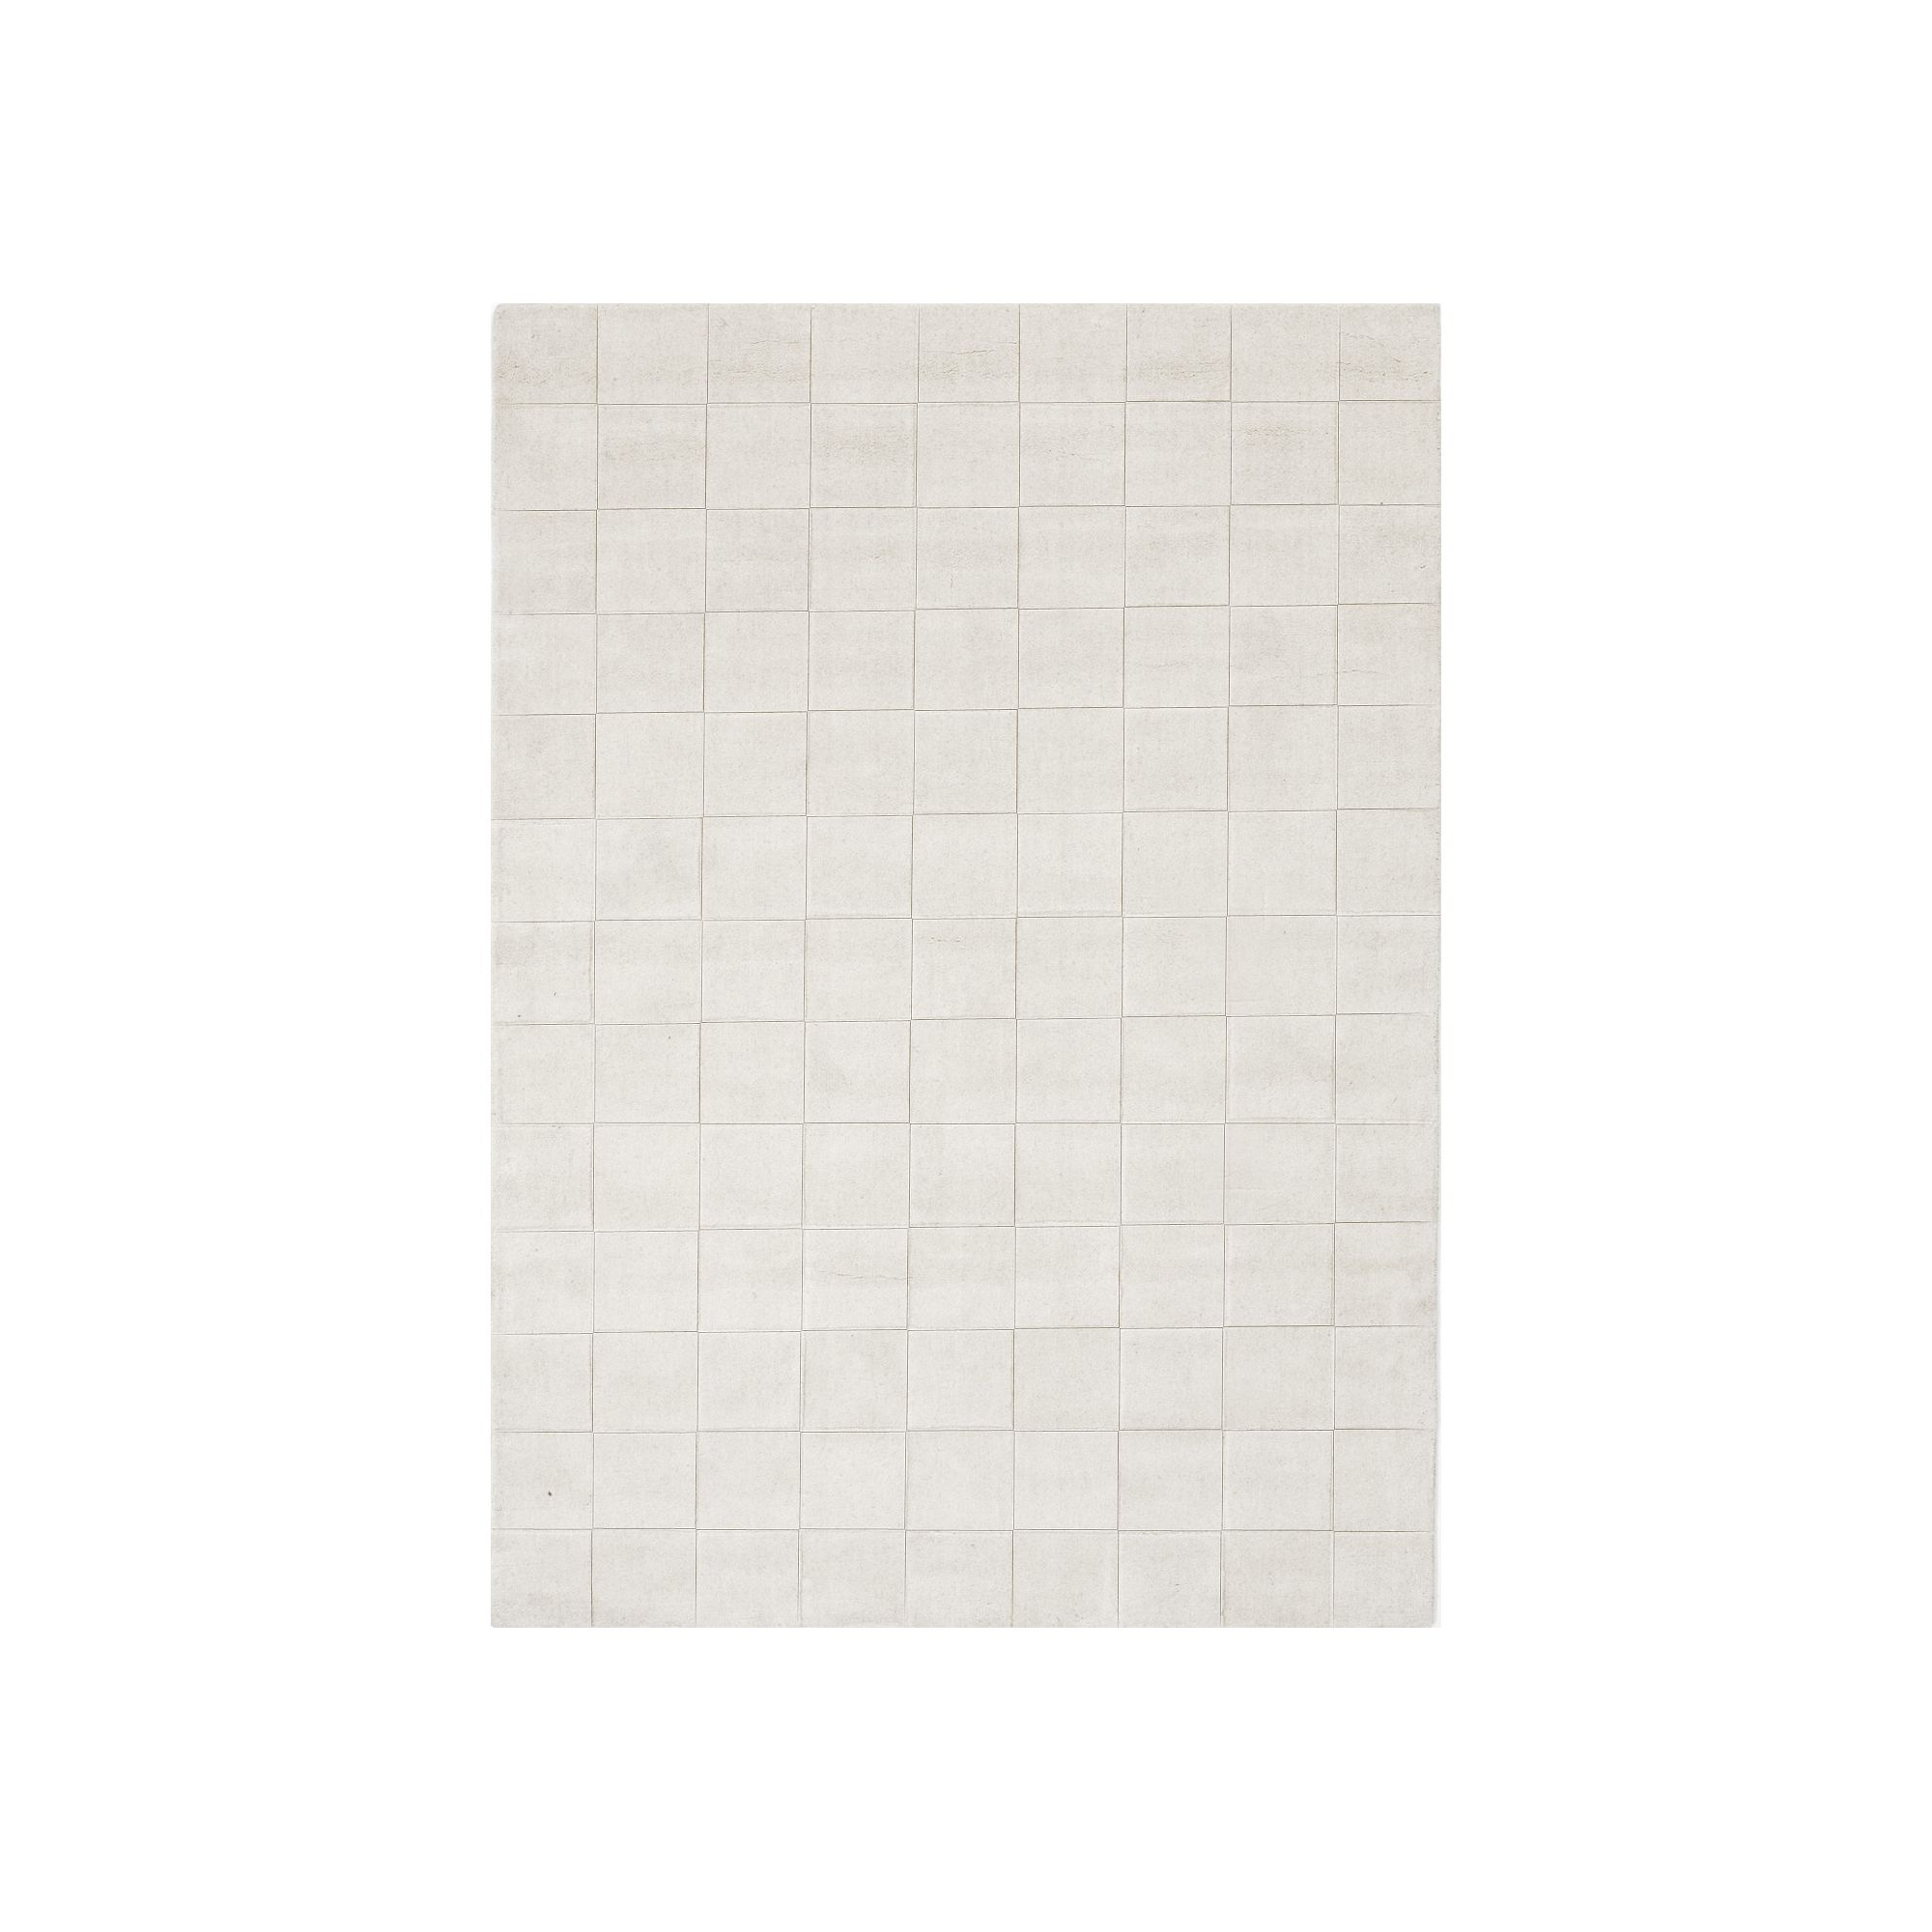 Linie Design Luzern White Rug - 240cm x 170cm at Tesco Direct